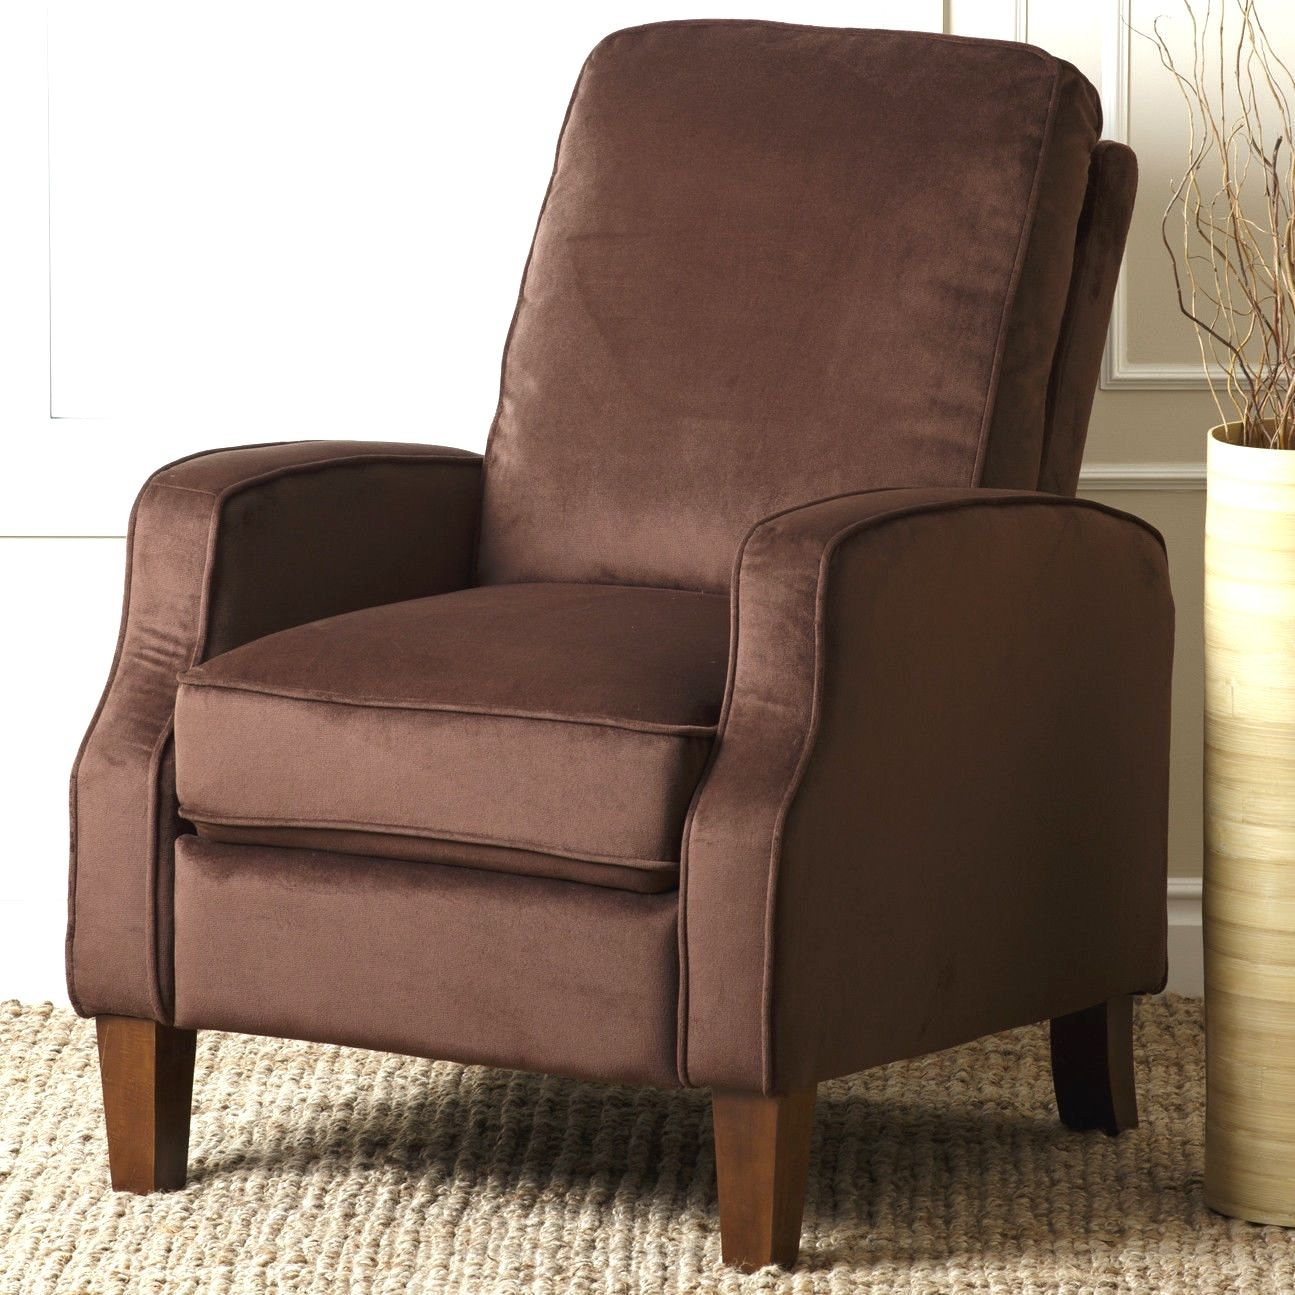 Exceptional Best Living Room Chairs For Bad Backs